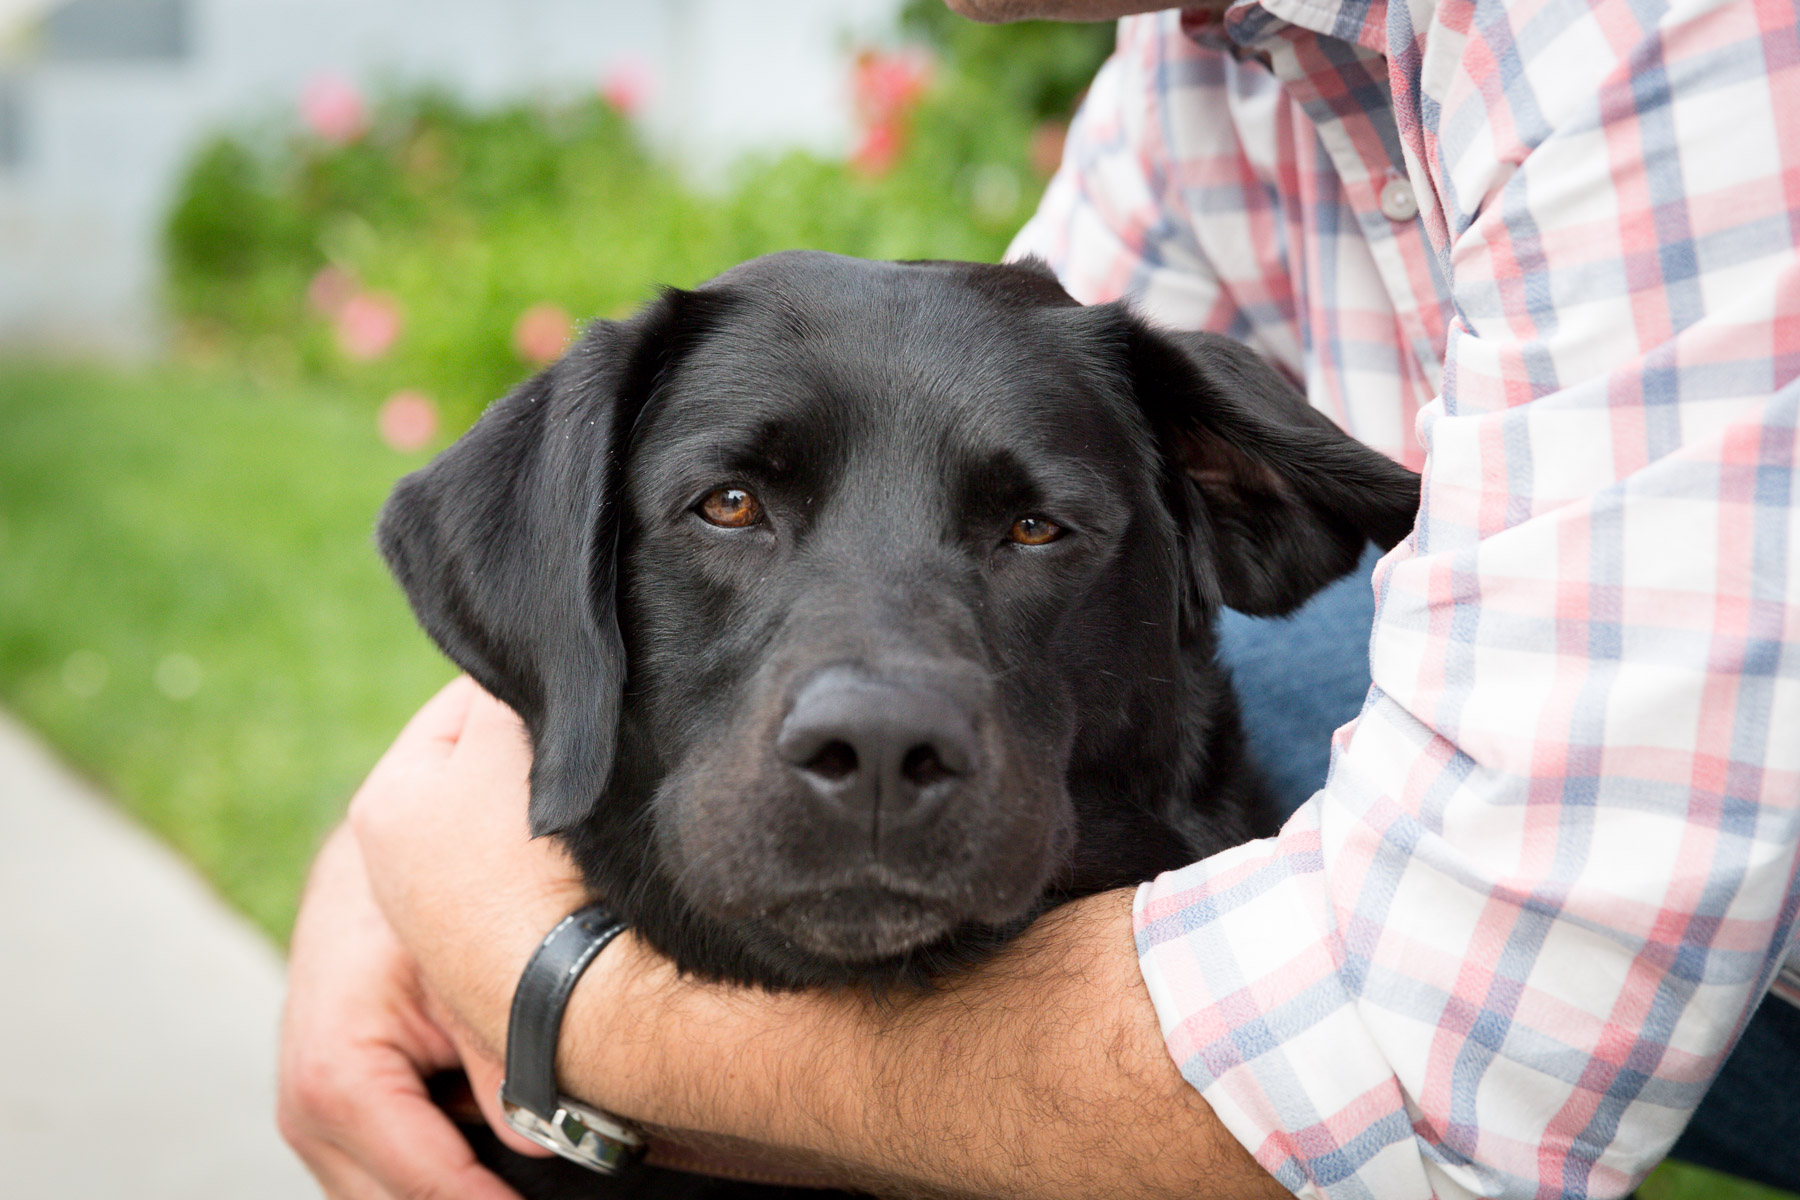 guidance-dog-labrador-pet-portrait-dog-photography